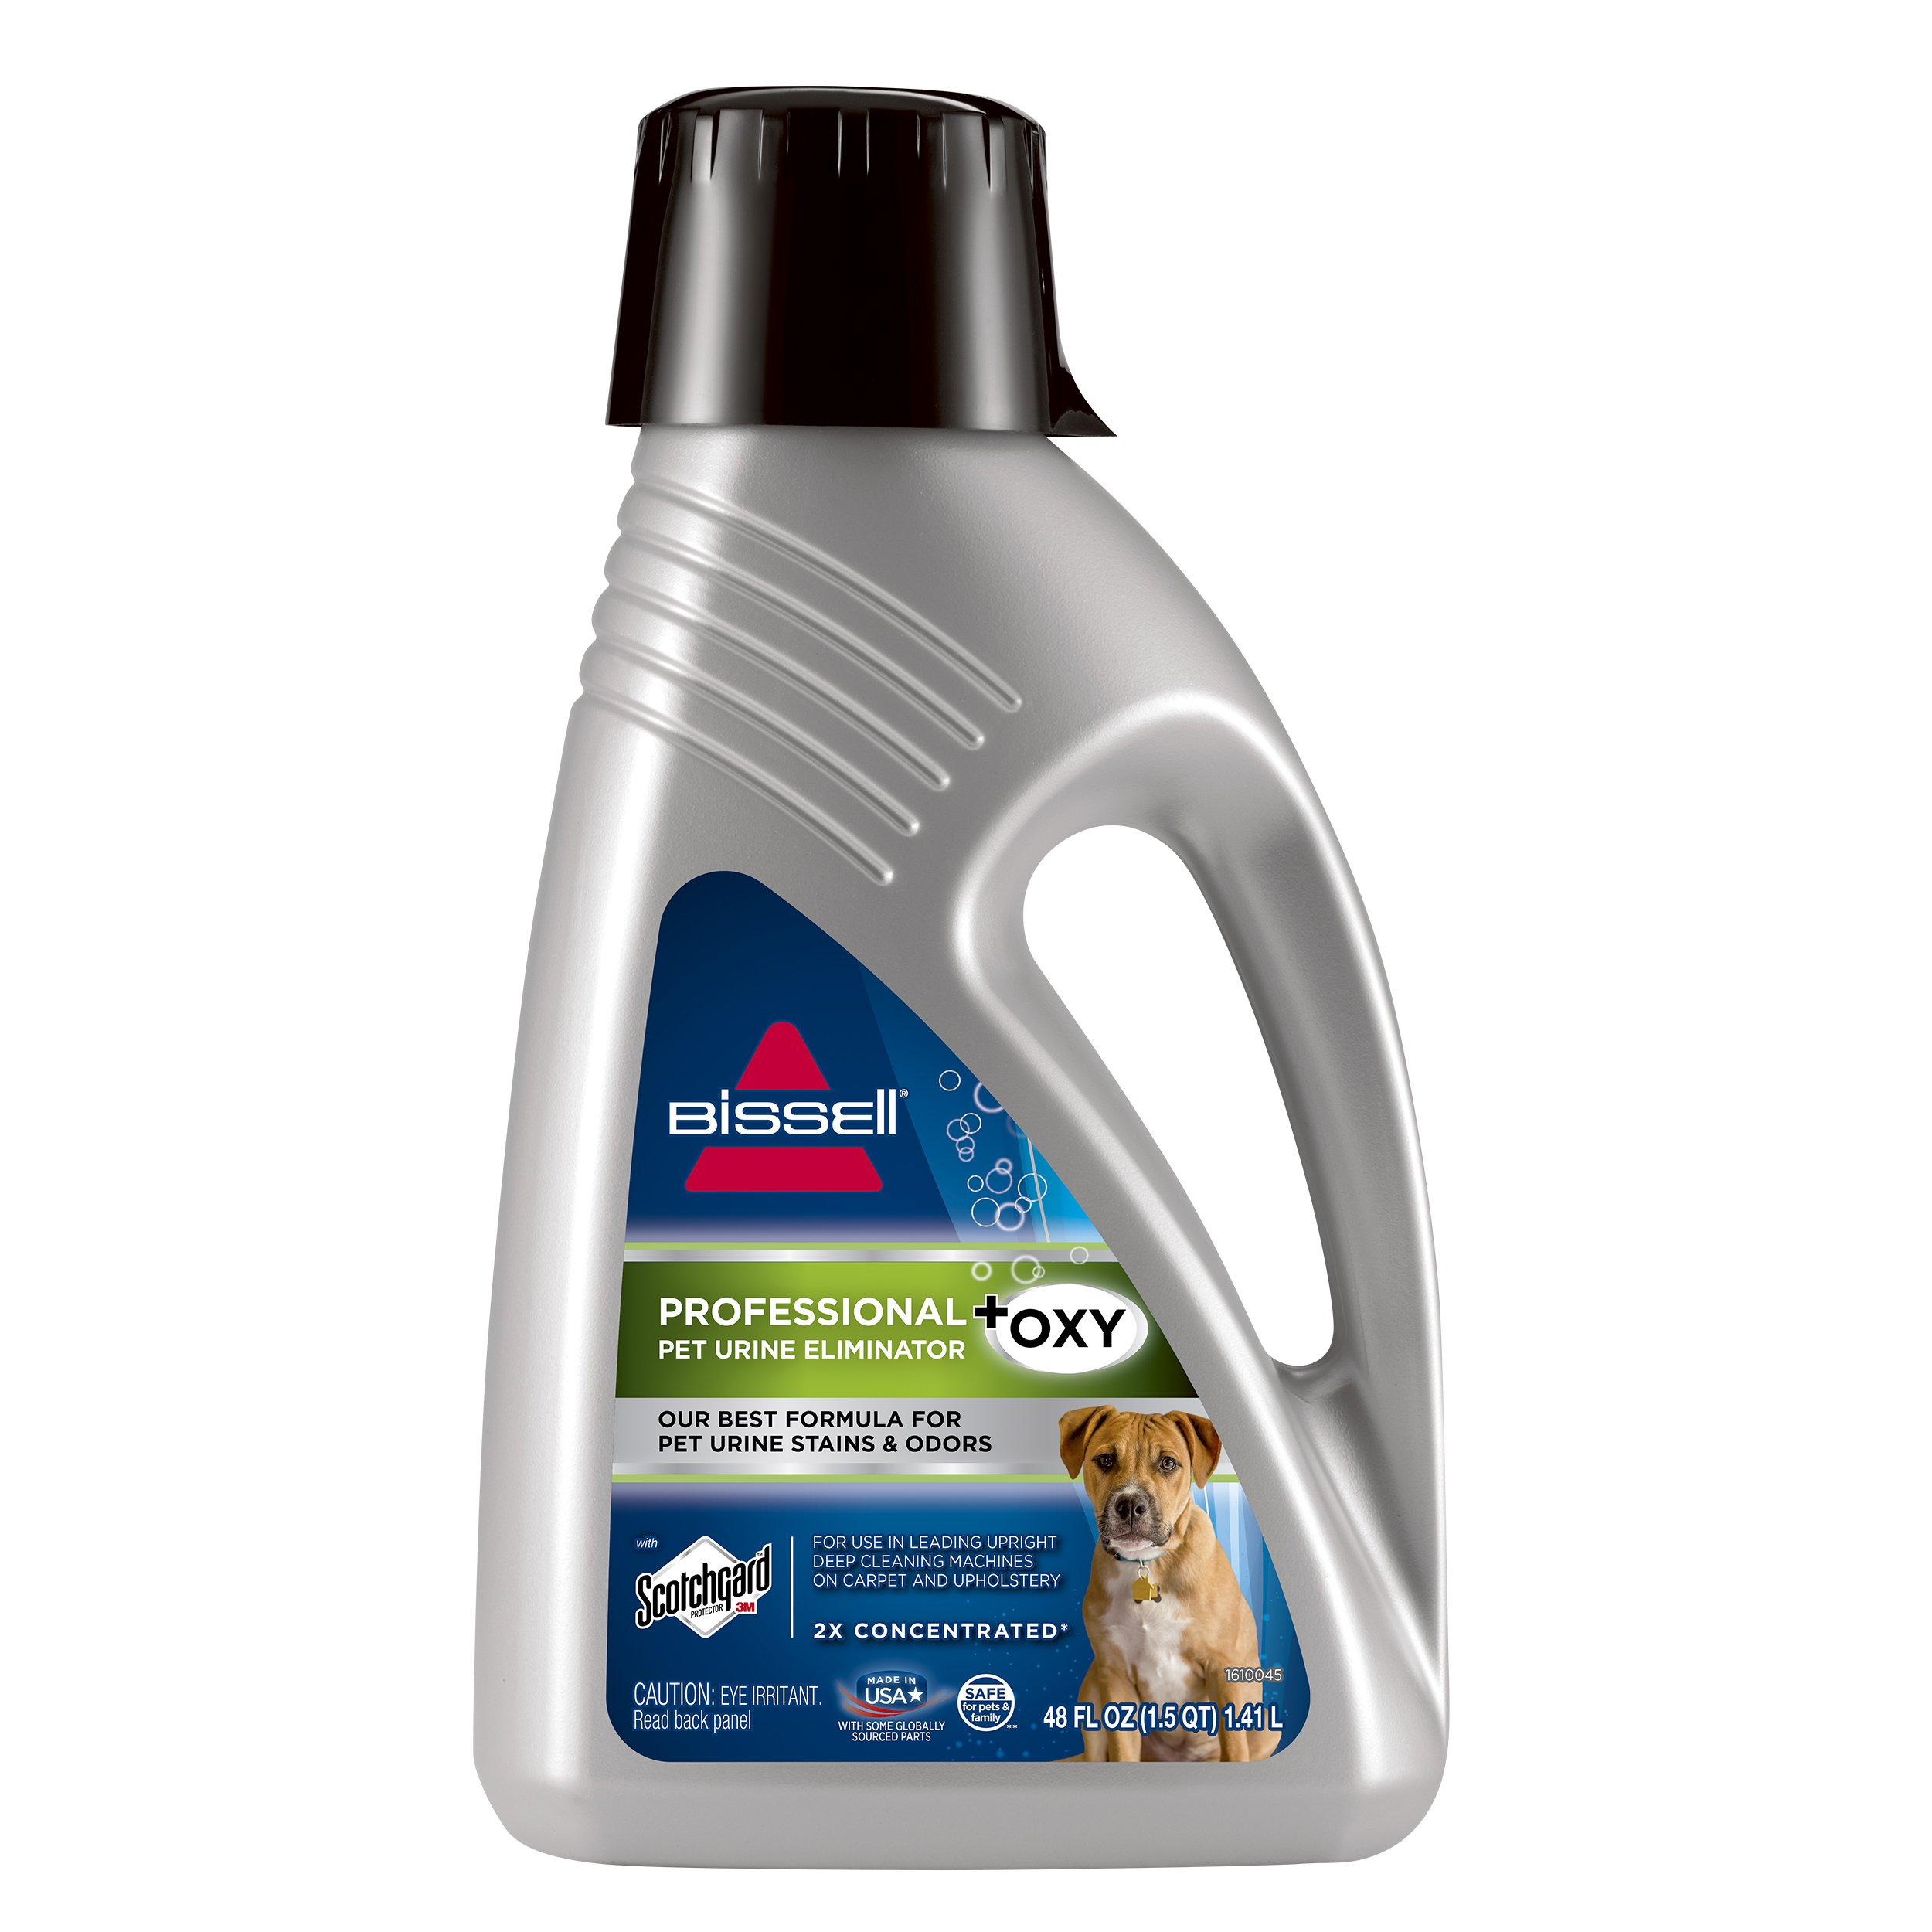 Bissell 1990 Pro Pet Urine Eliminator Upright Deep Cleaner Formula by Bissell